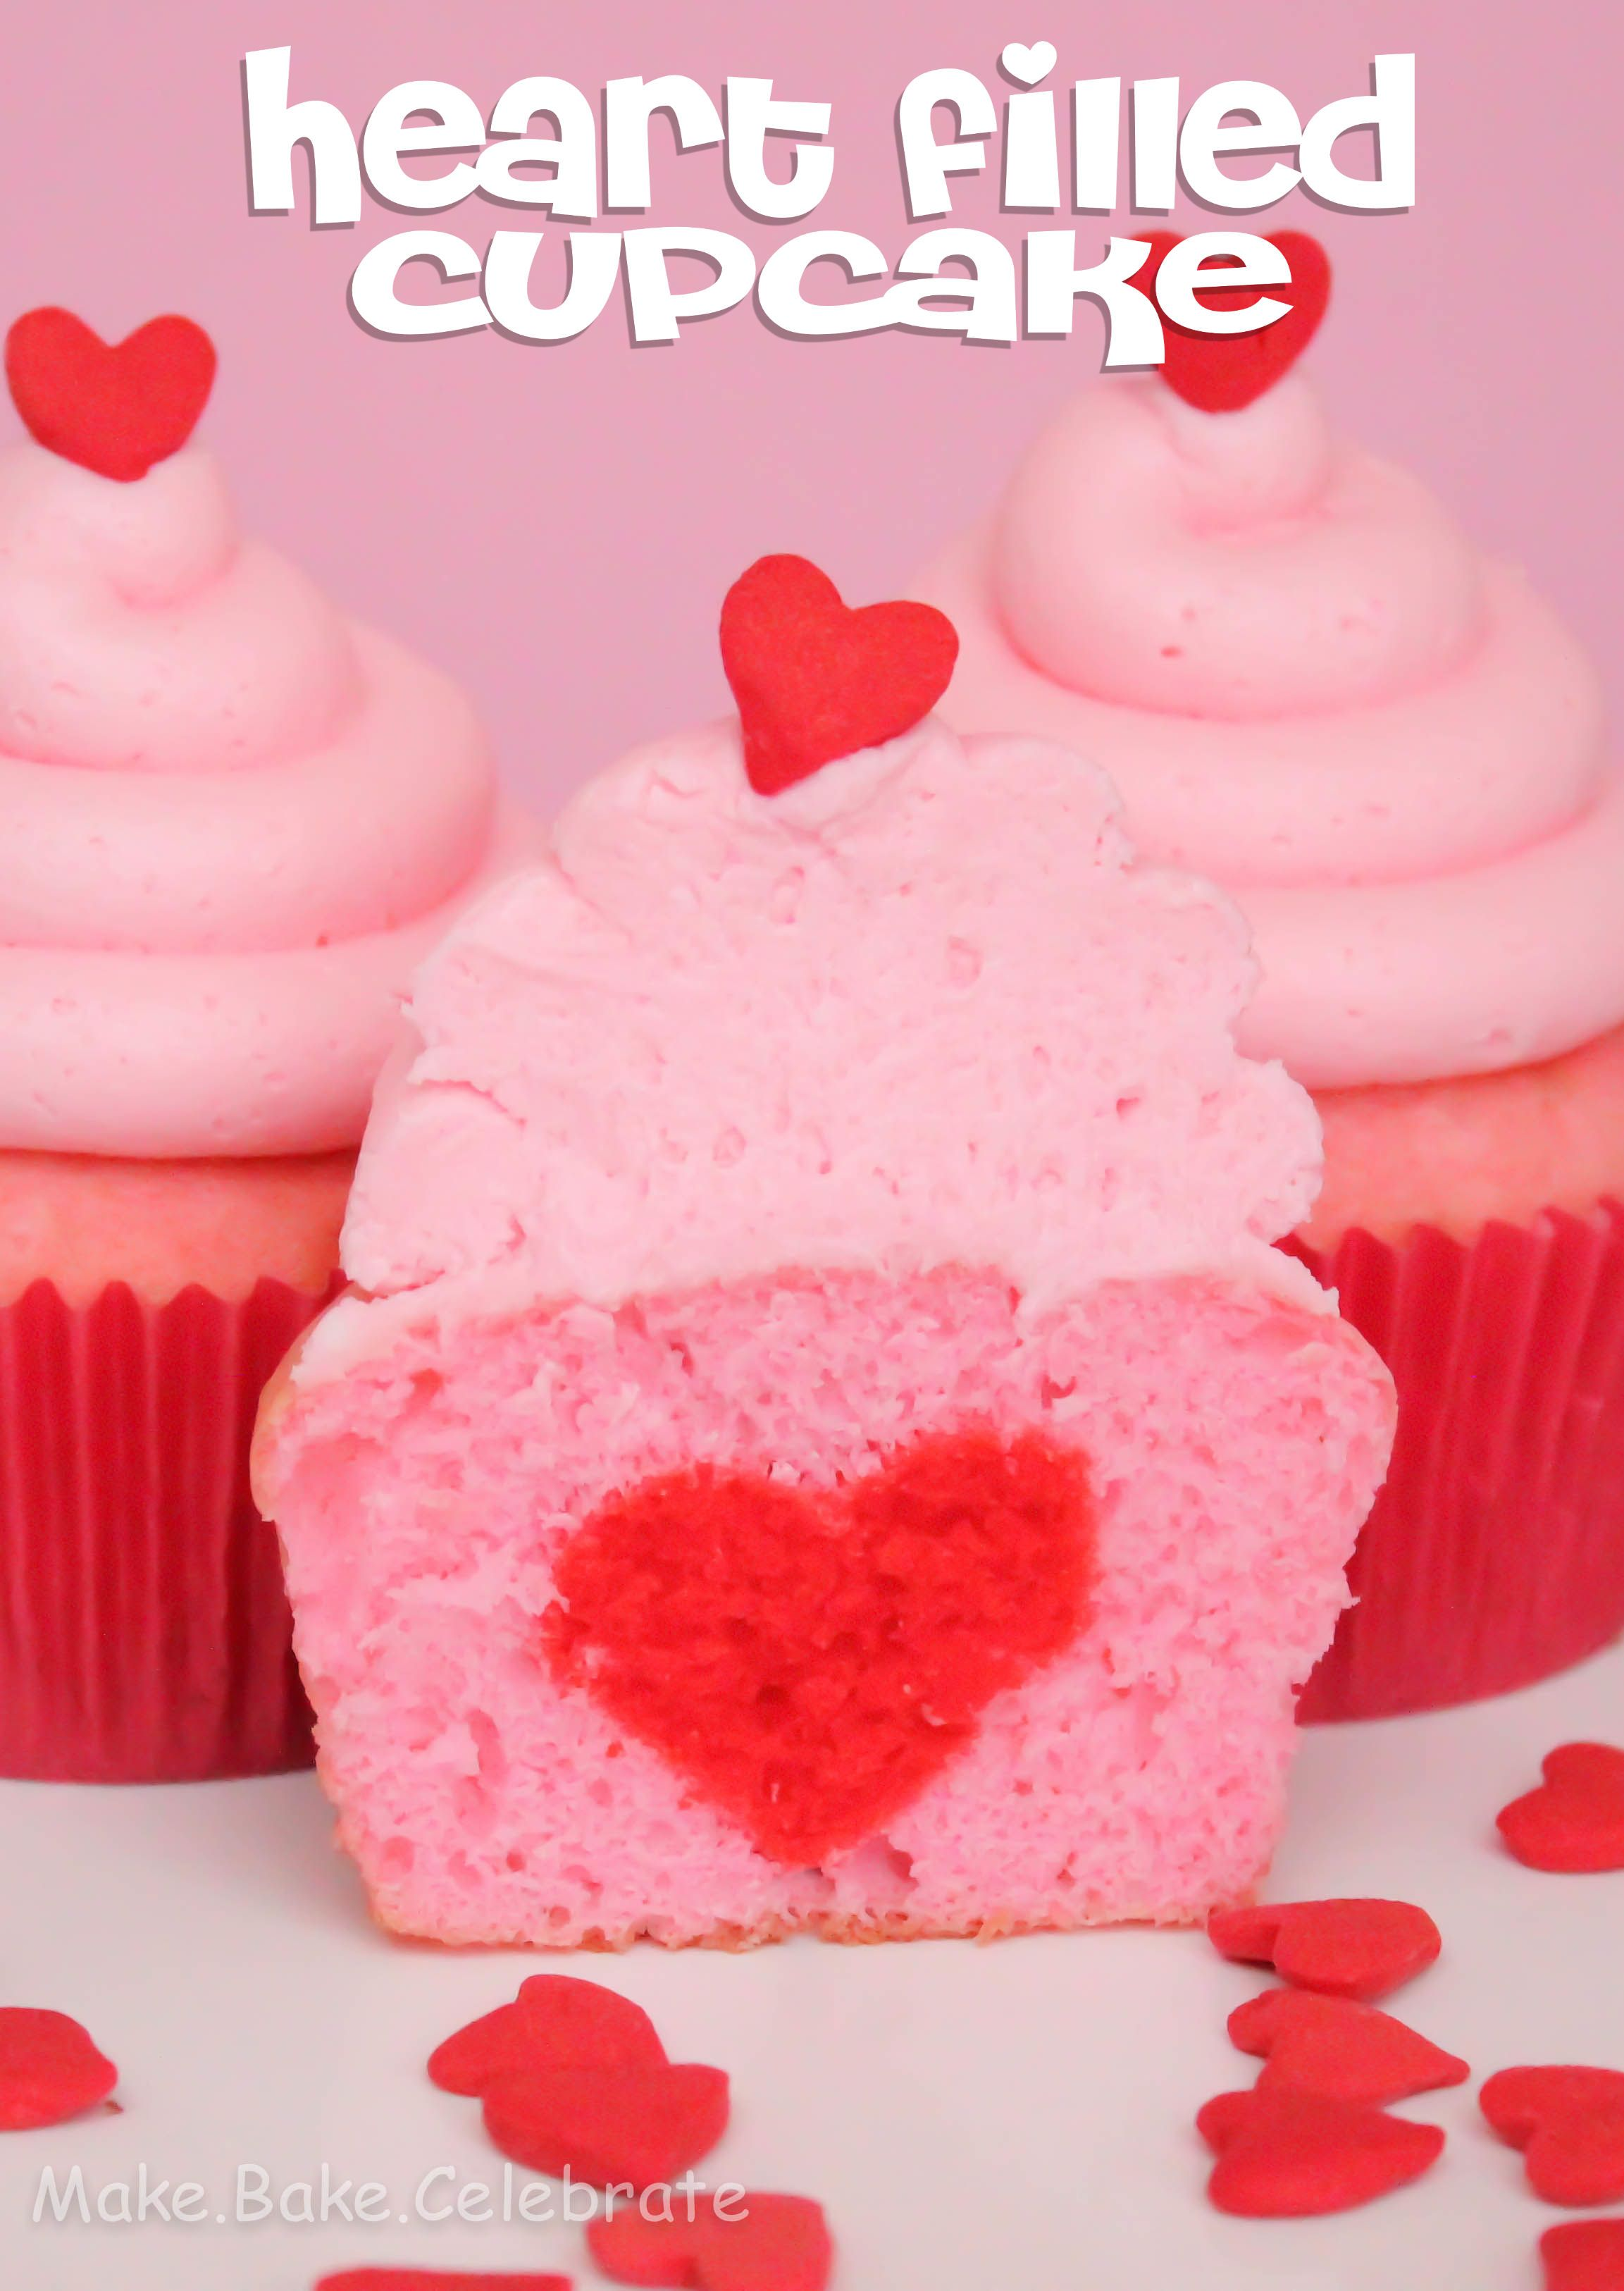 Heart filled cupcake for two how to bake a heart inside a